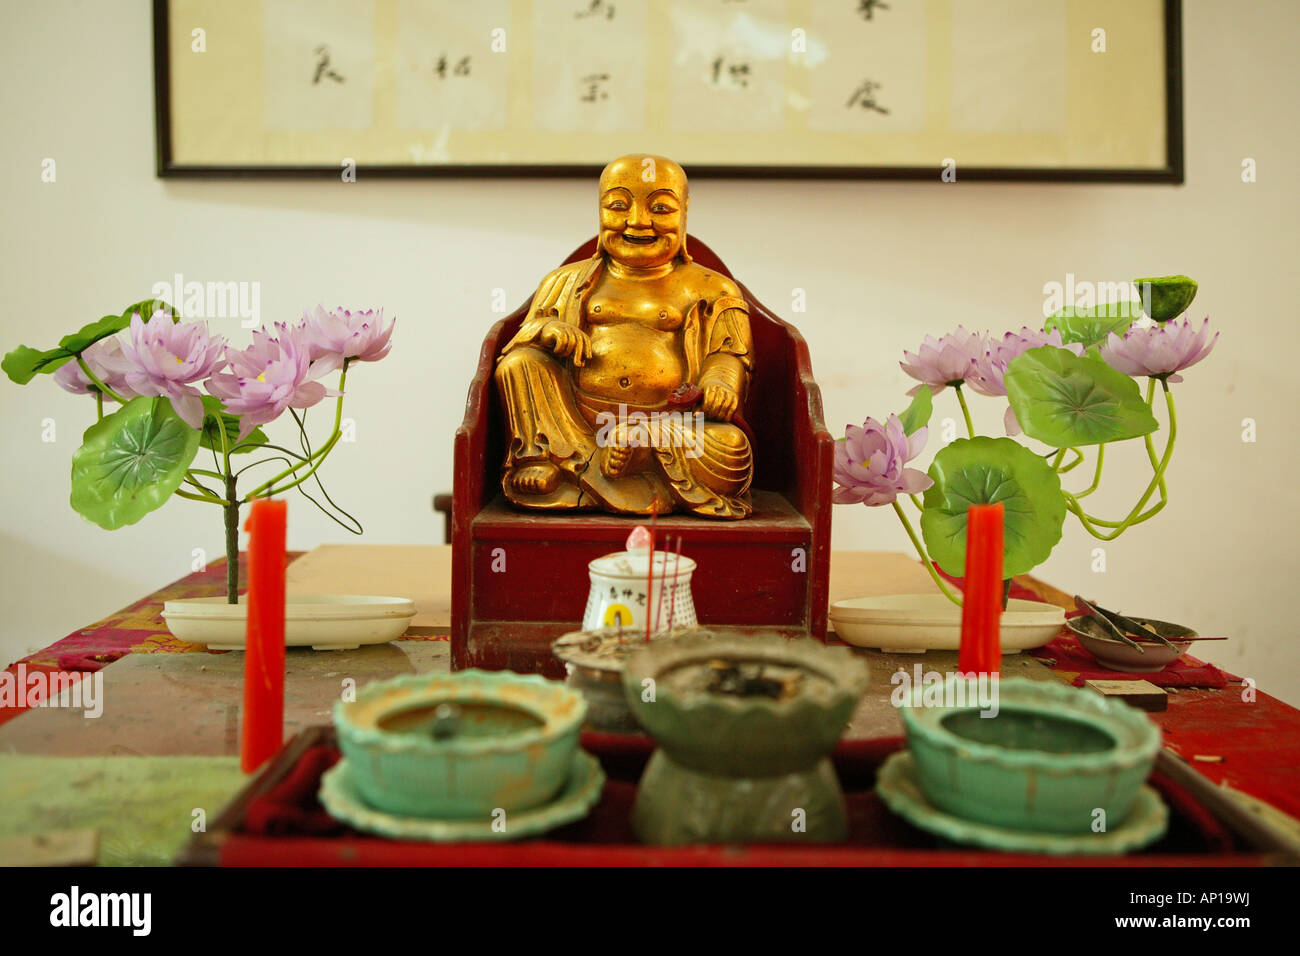 Dining Hall Altar With Buddha Statue And Plastic Lotus Flowers Stock